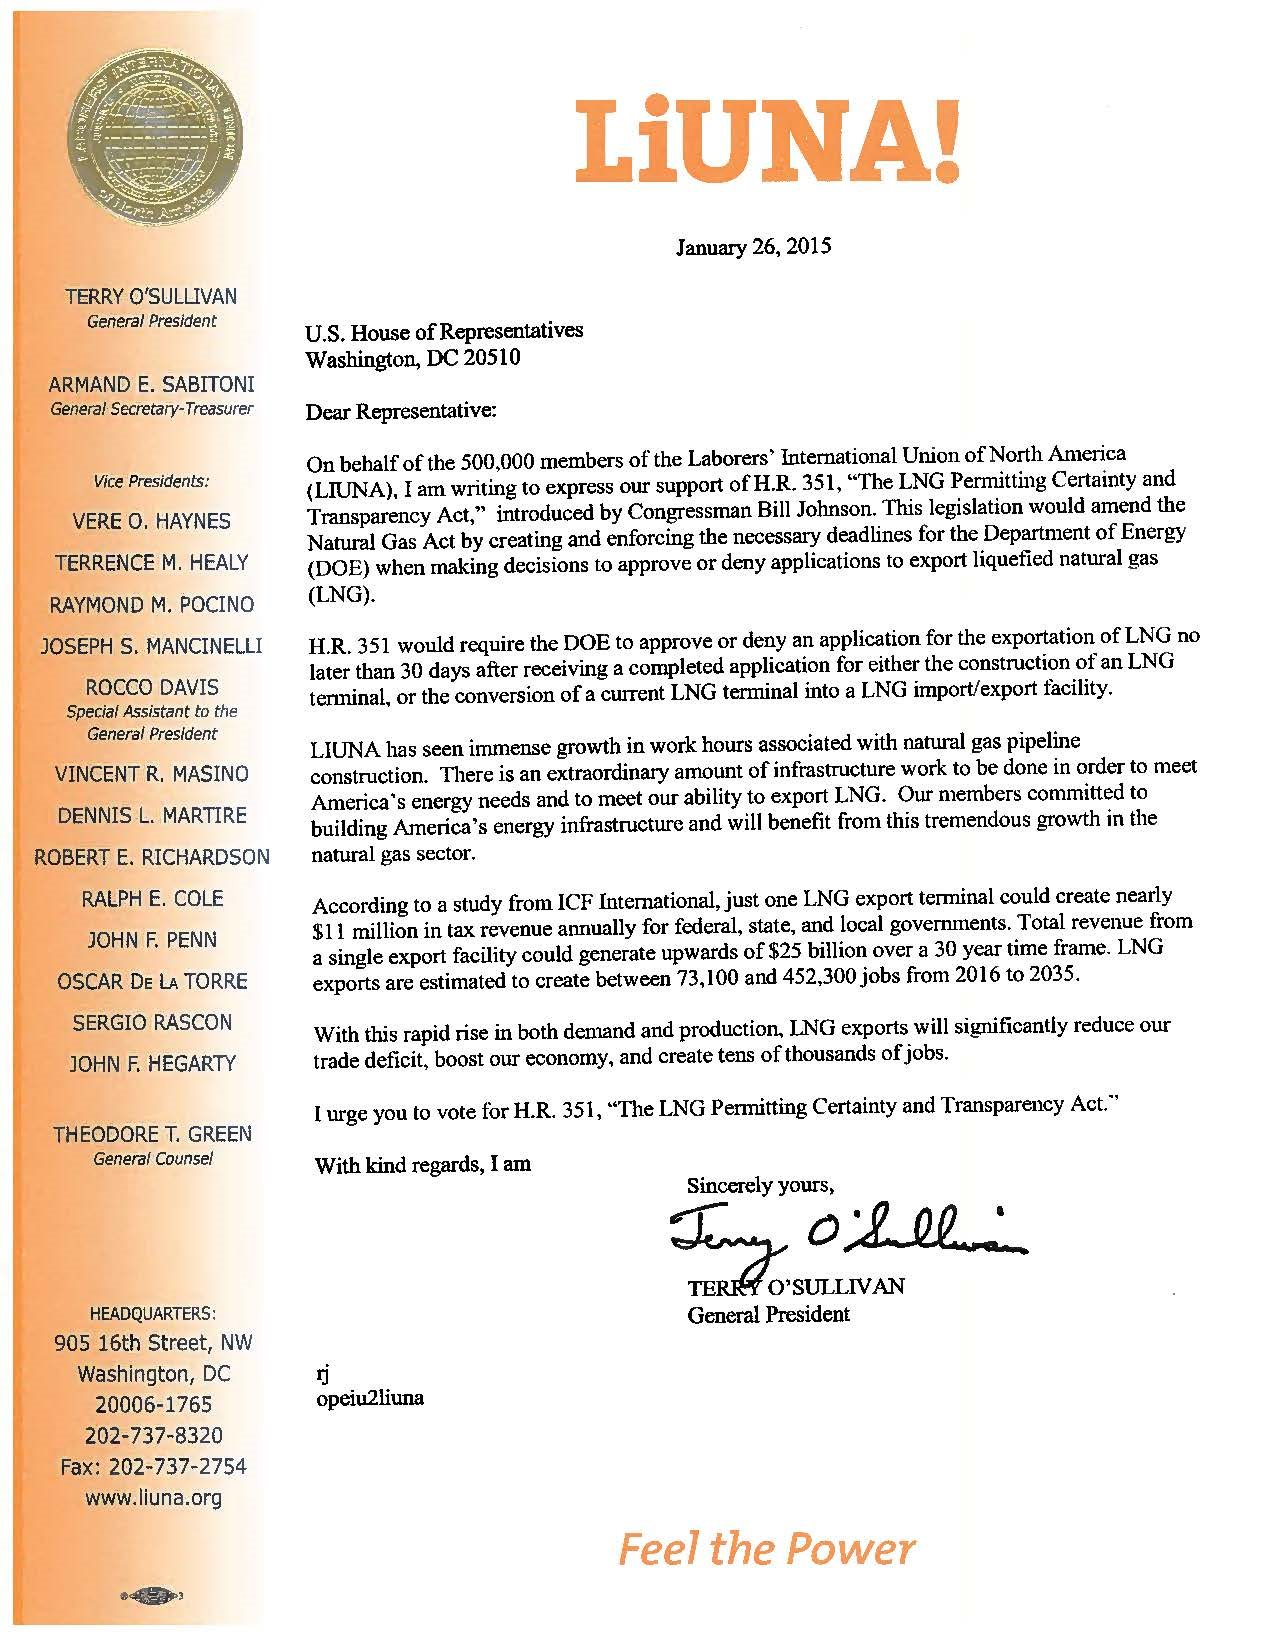 LIUNA Letter in Support of LNG Export Bill HR 351.jpg